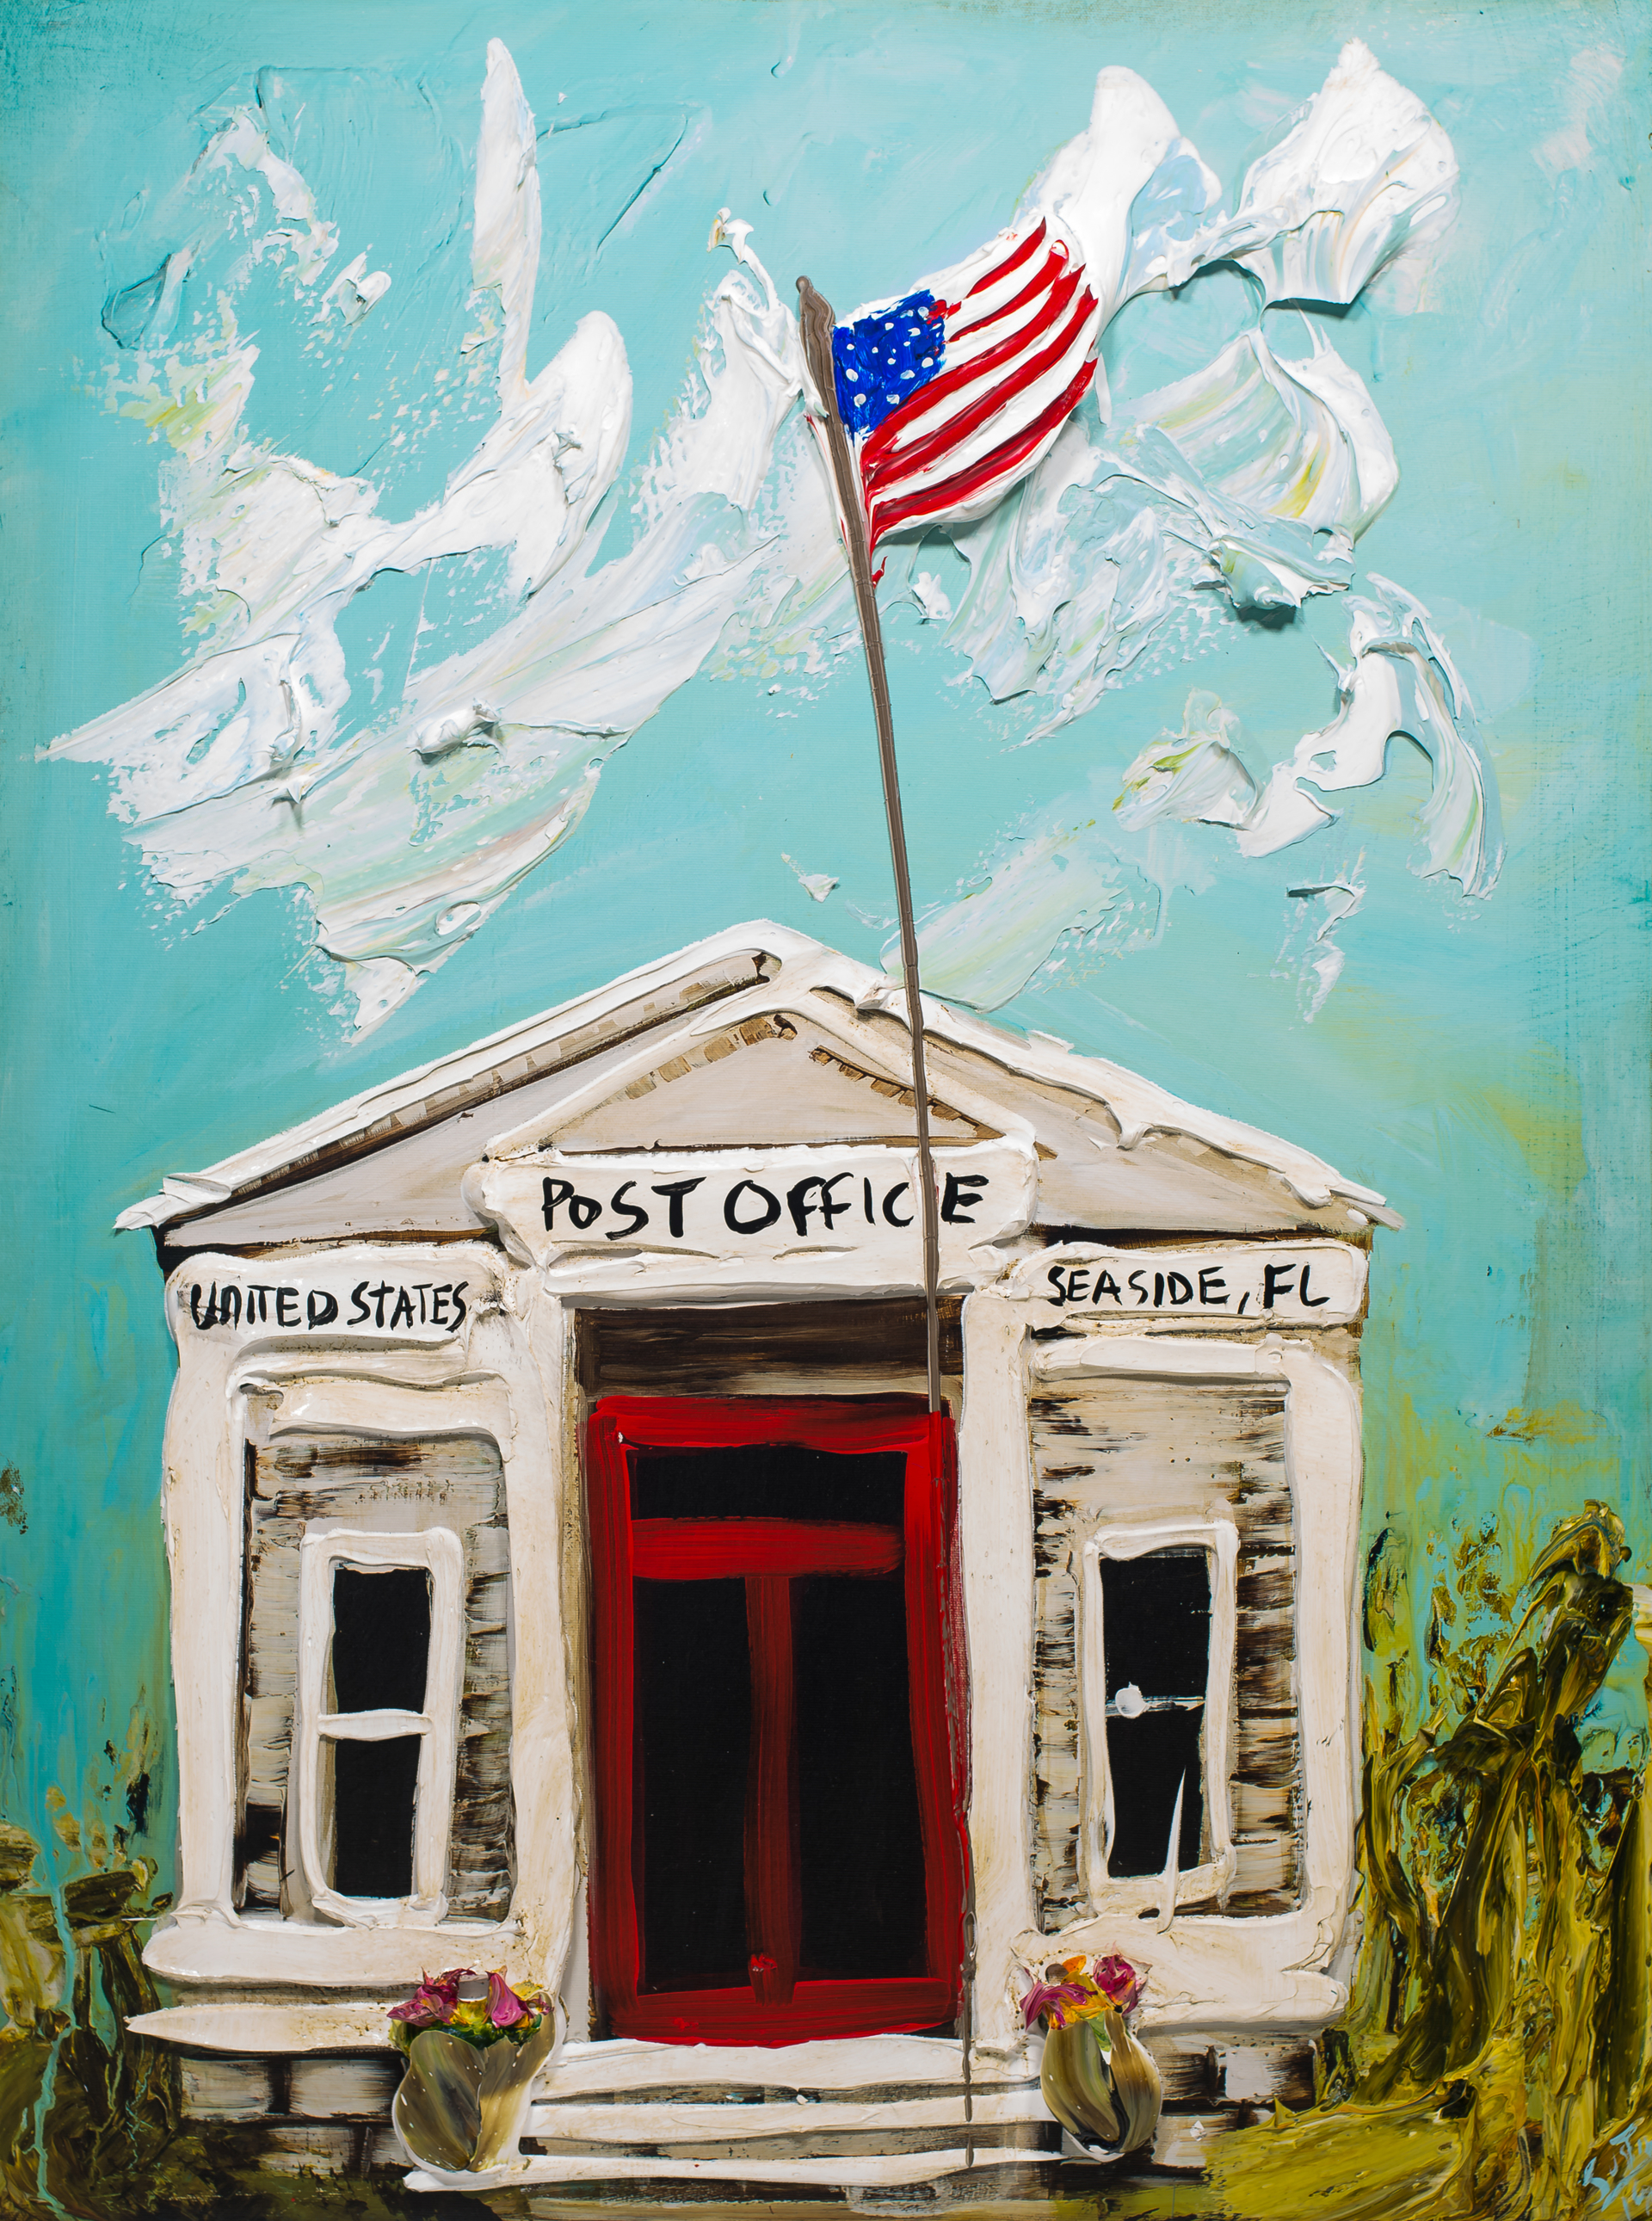 SEASIDE POST OFFICE HPAE 8/50 by JUSTIN GAFFREY